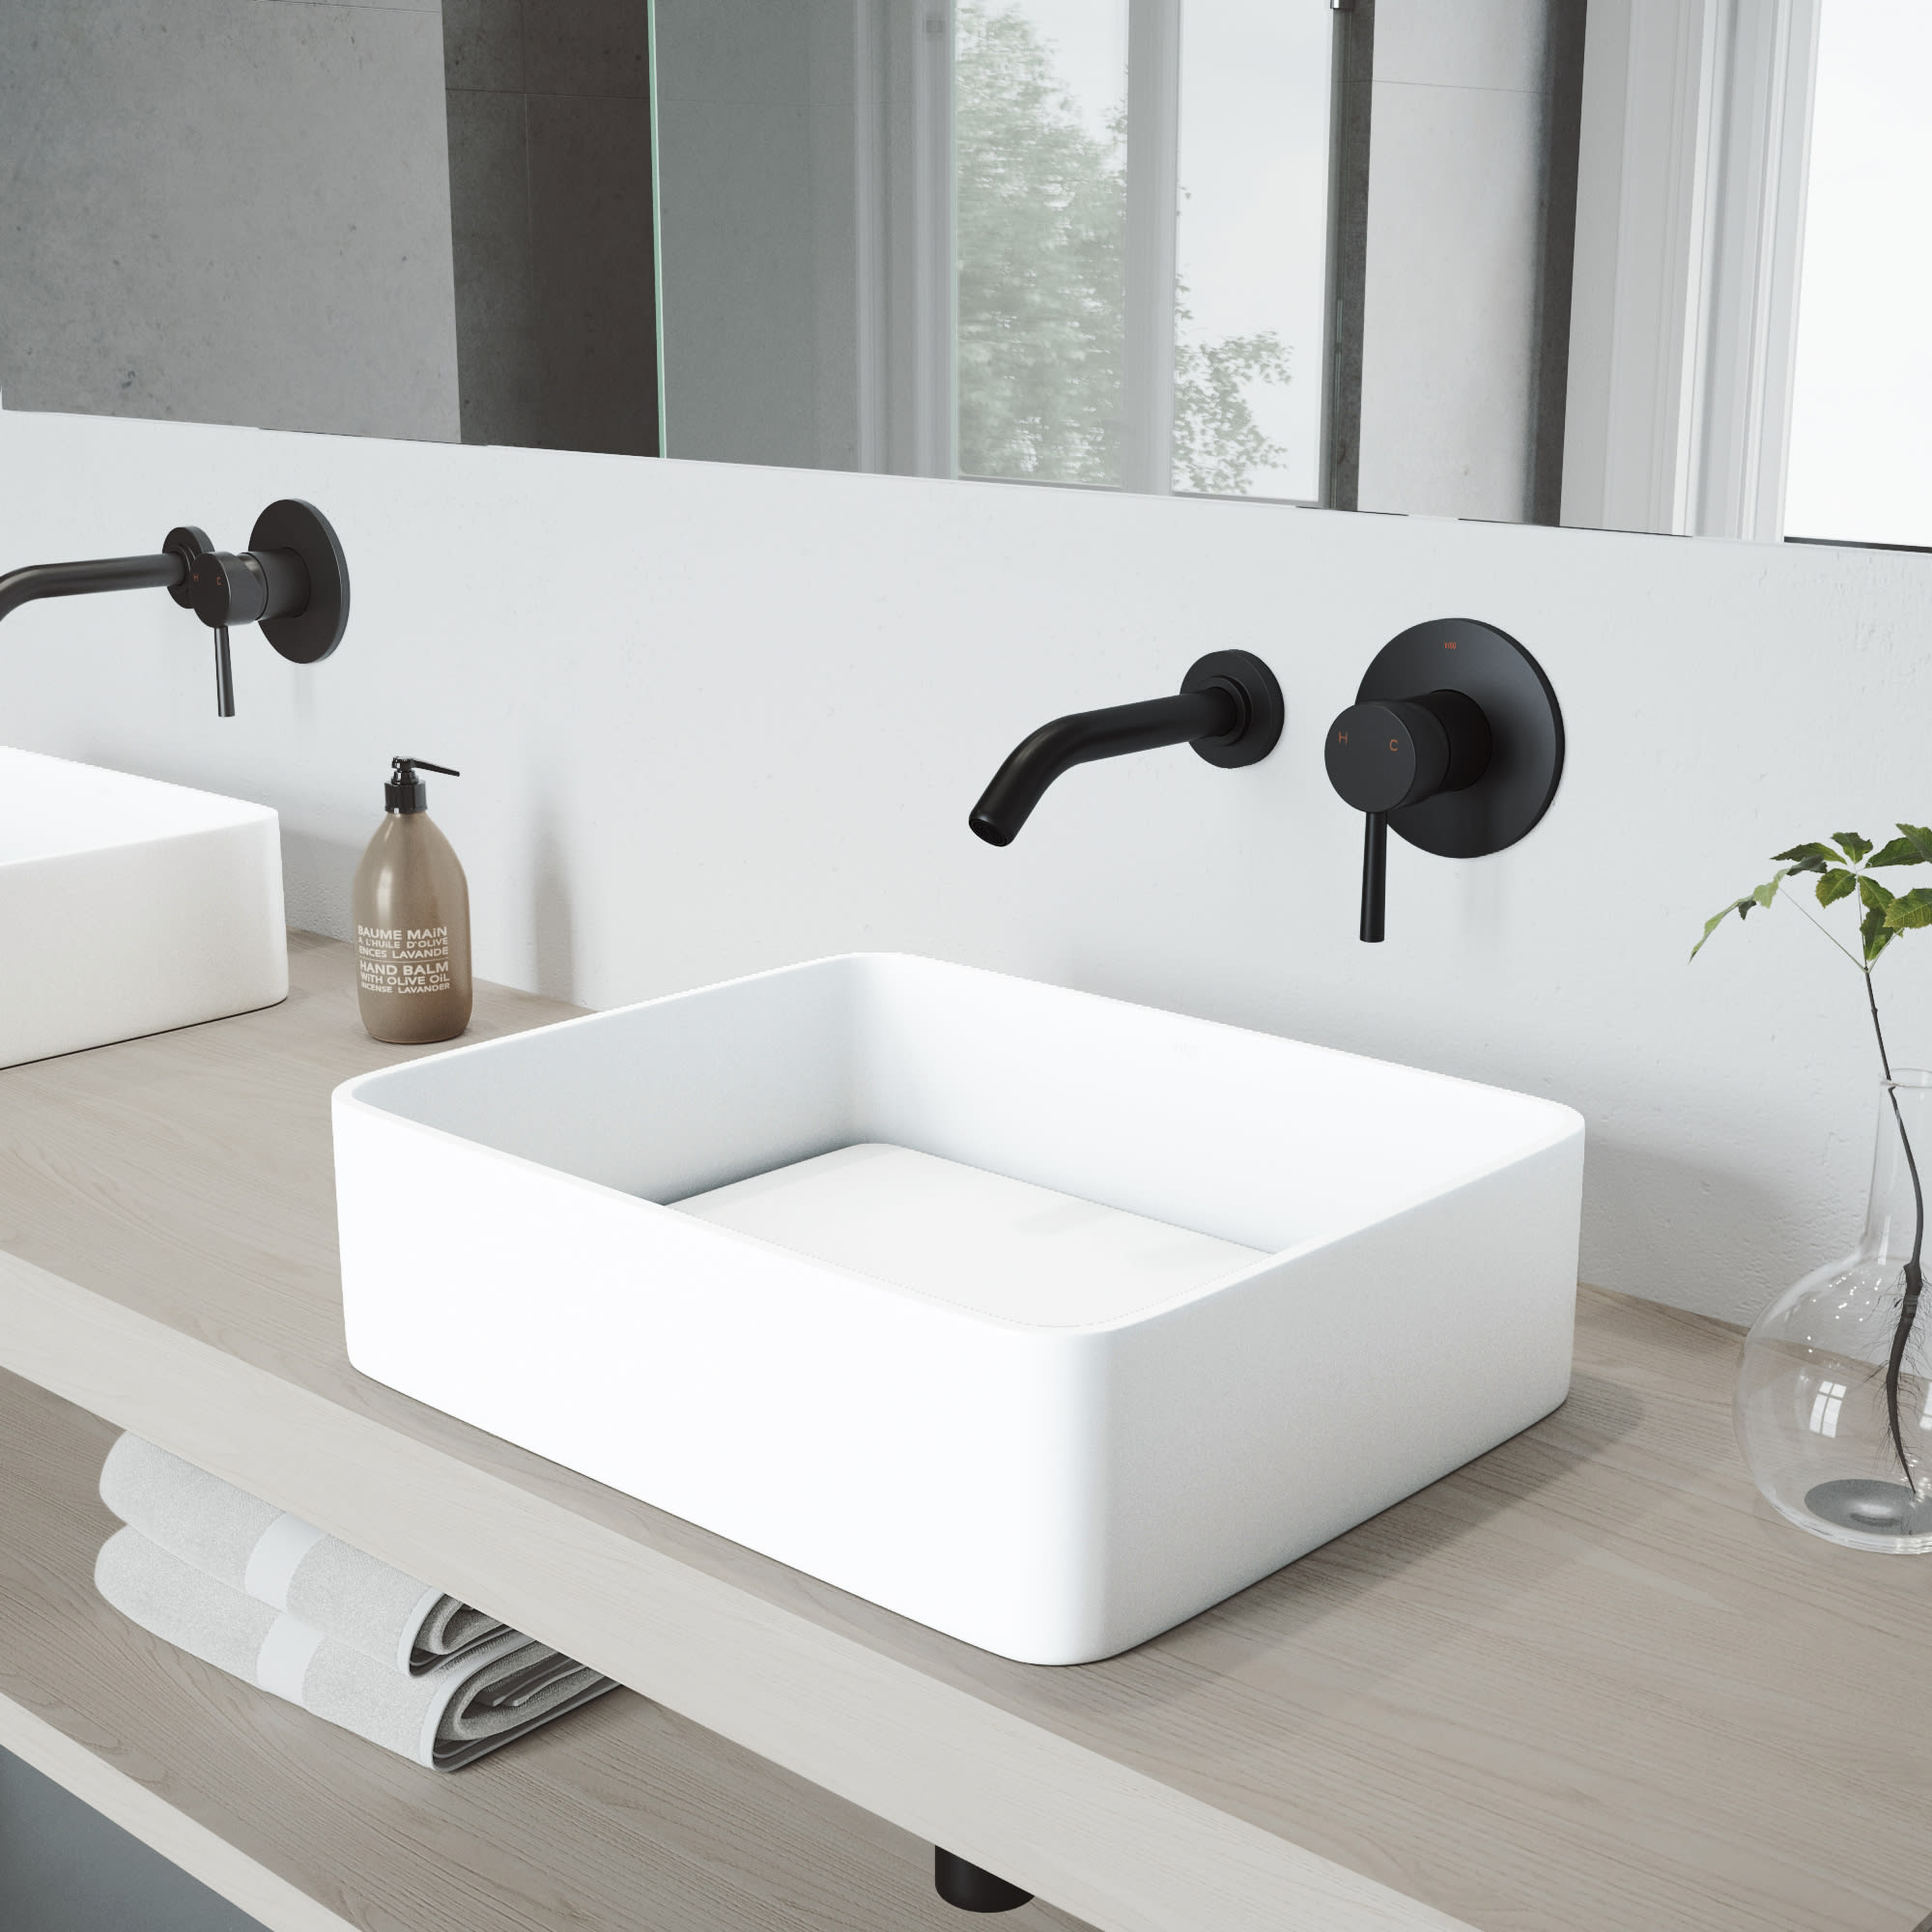 Vigo Vgt995 Matte Black Jasmine 18 1 8 Matte Stone Vessel Bathroom Sink With Olus Matte Black 1 2 Gpm Wall Mounted Bathroom Faucet And Pop Up Drain Assembly Faucetdirect Com